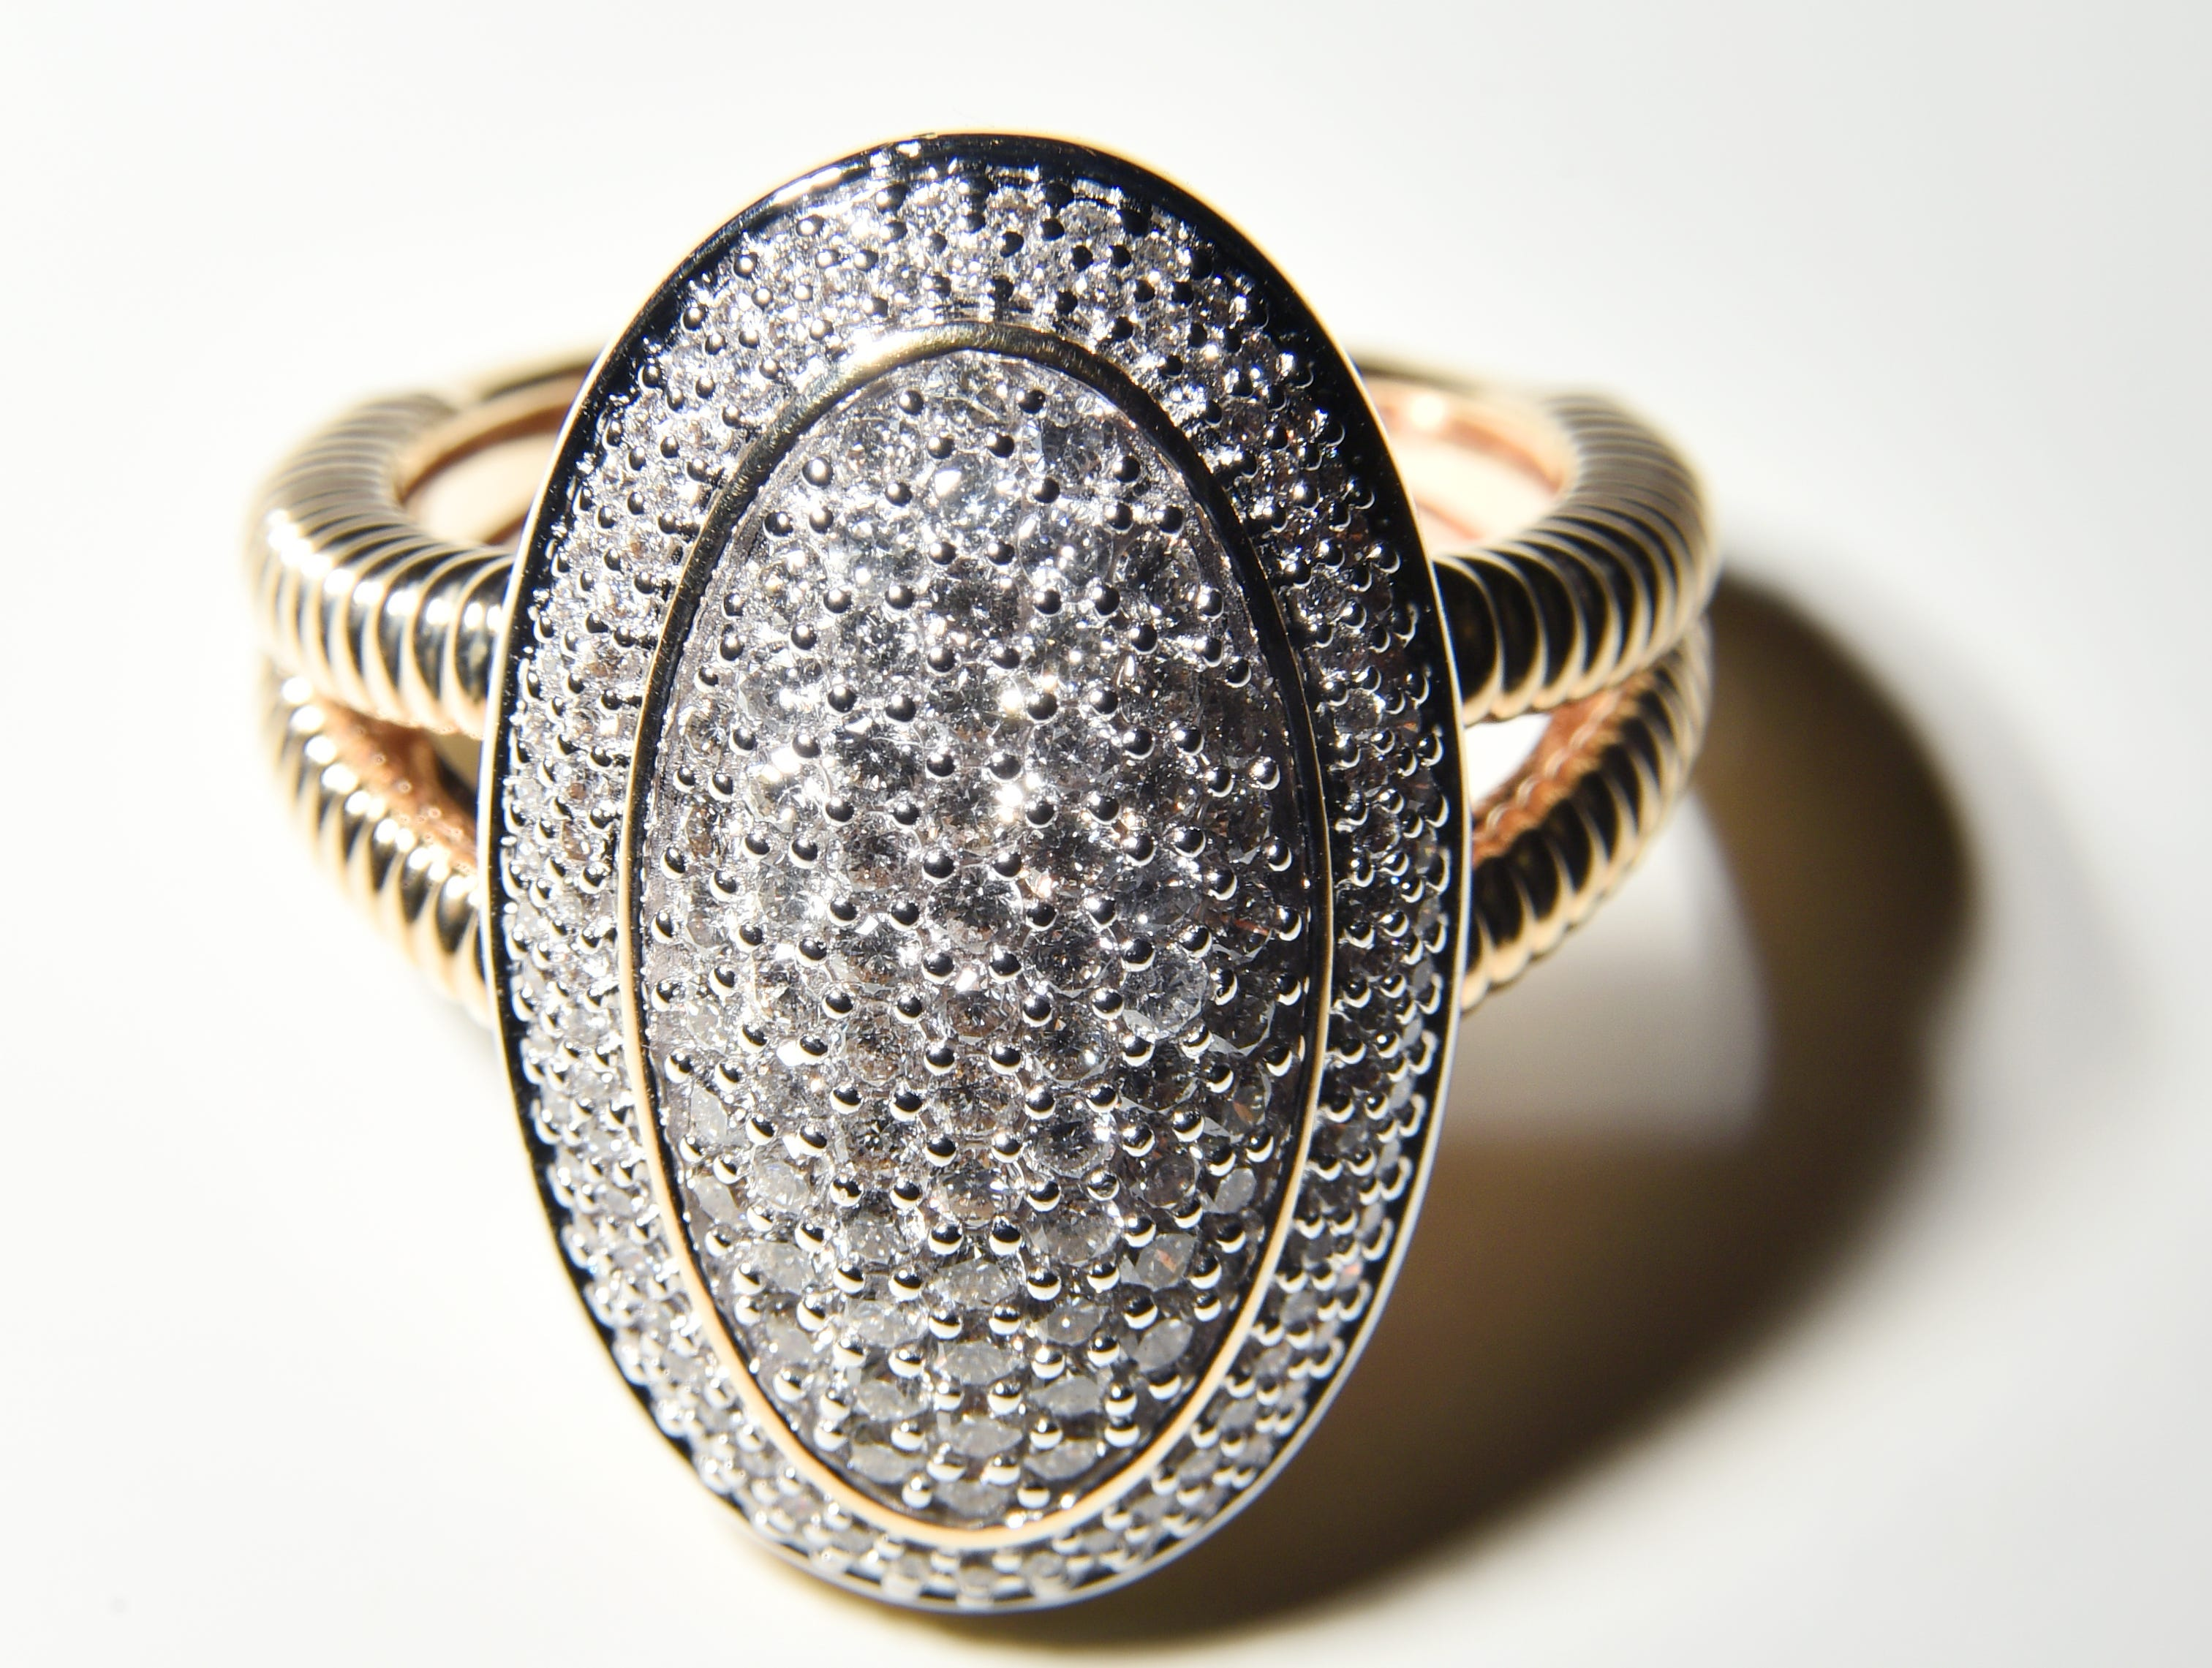 A diamond ring from Pace Jewelers.